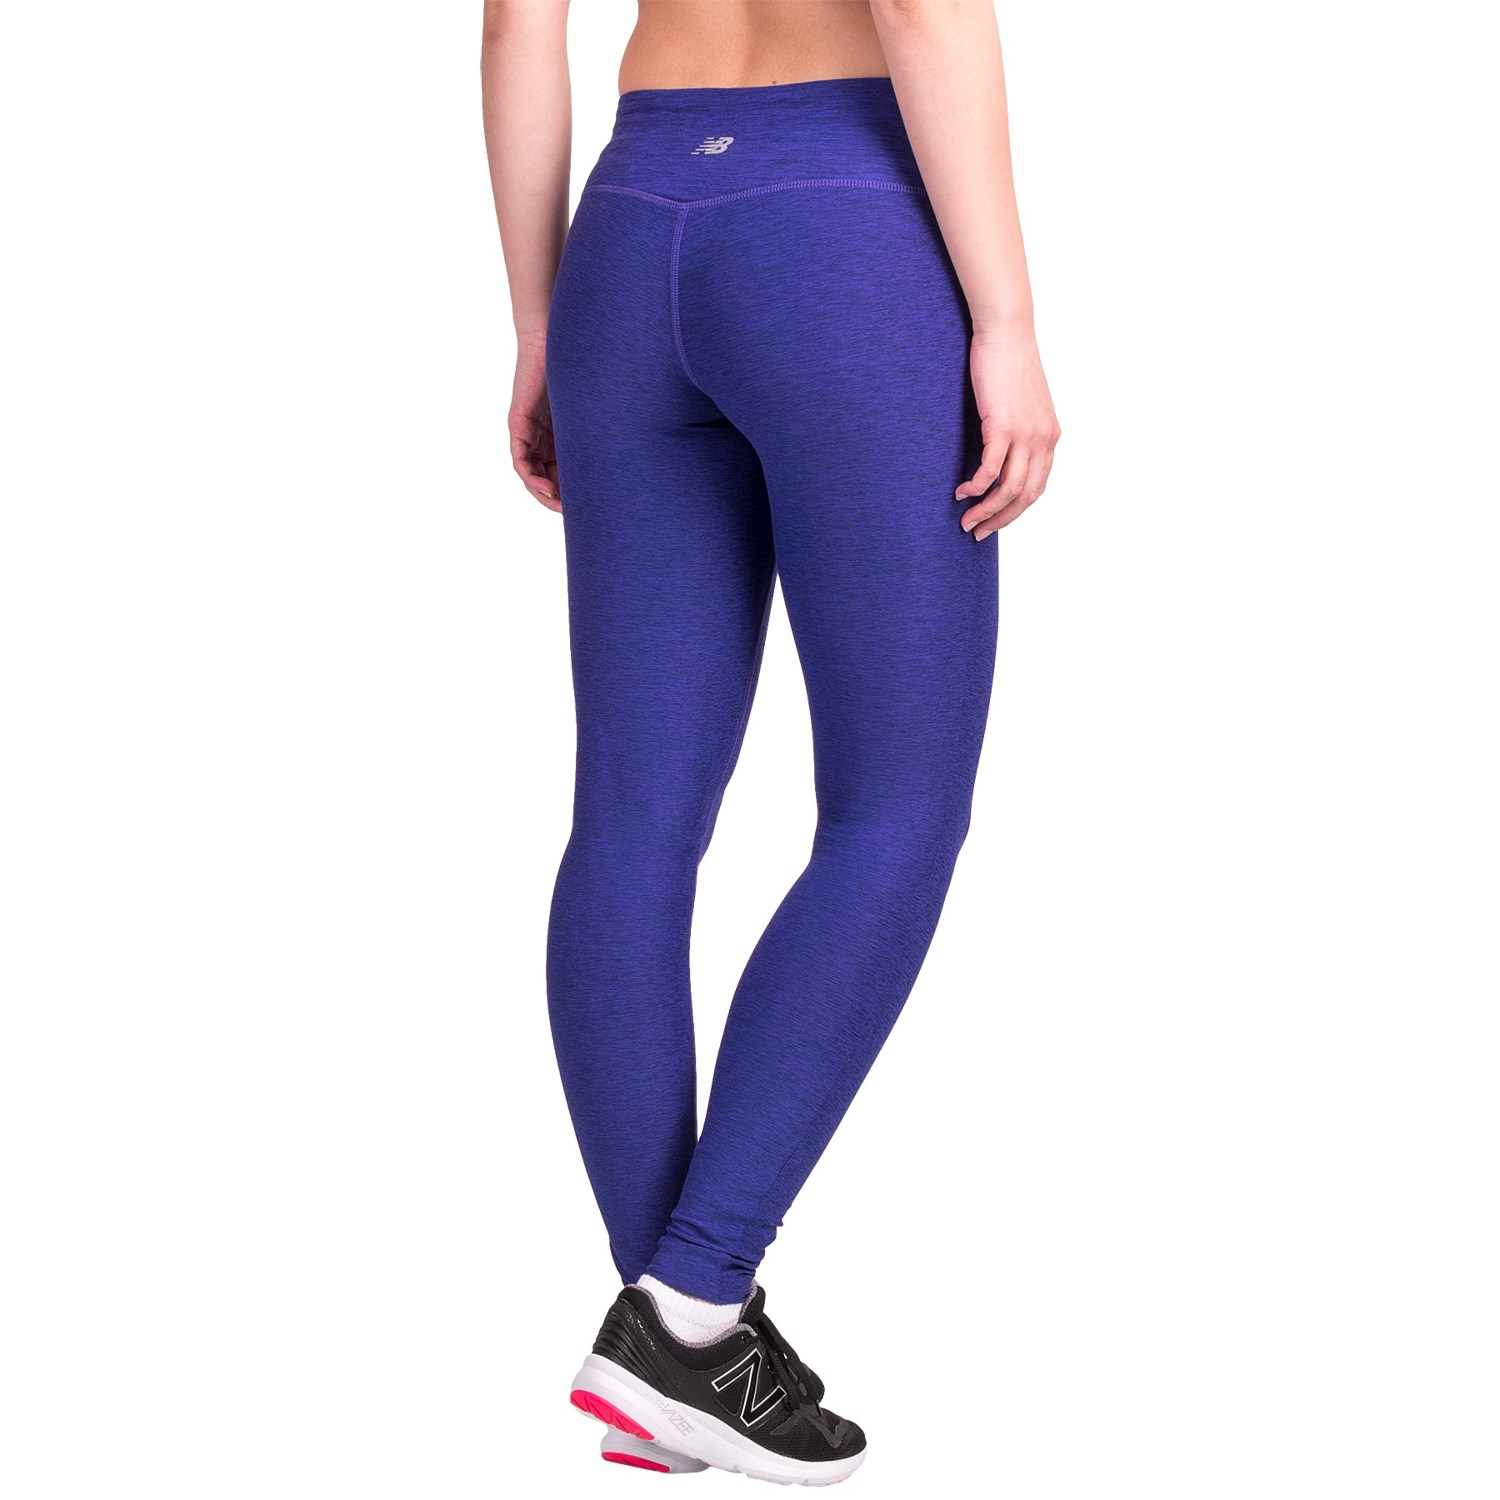 New Balance Space-Dyed Tights (For Women) - Save 50%